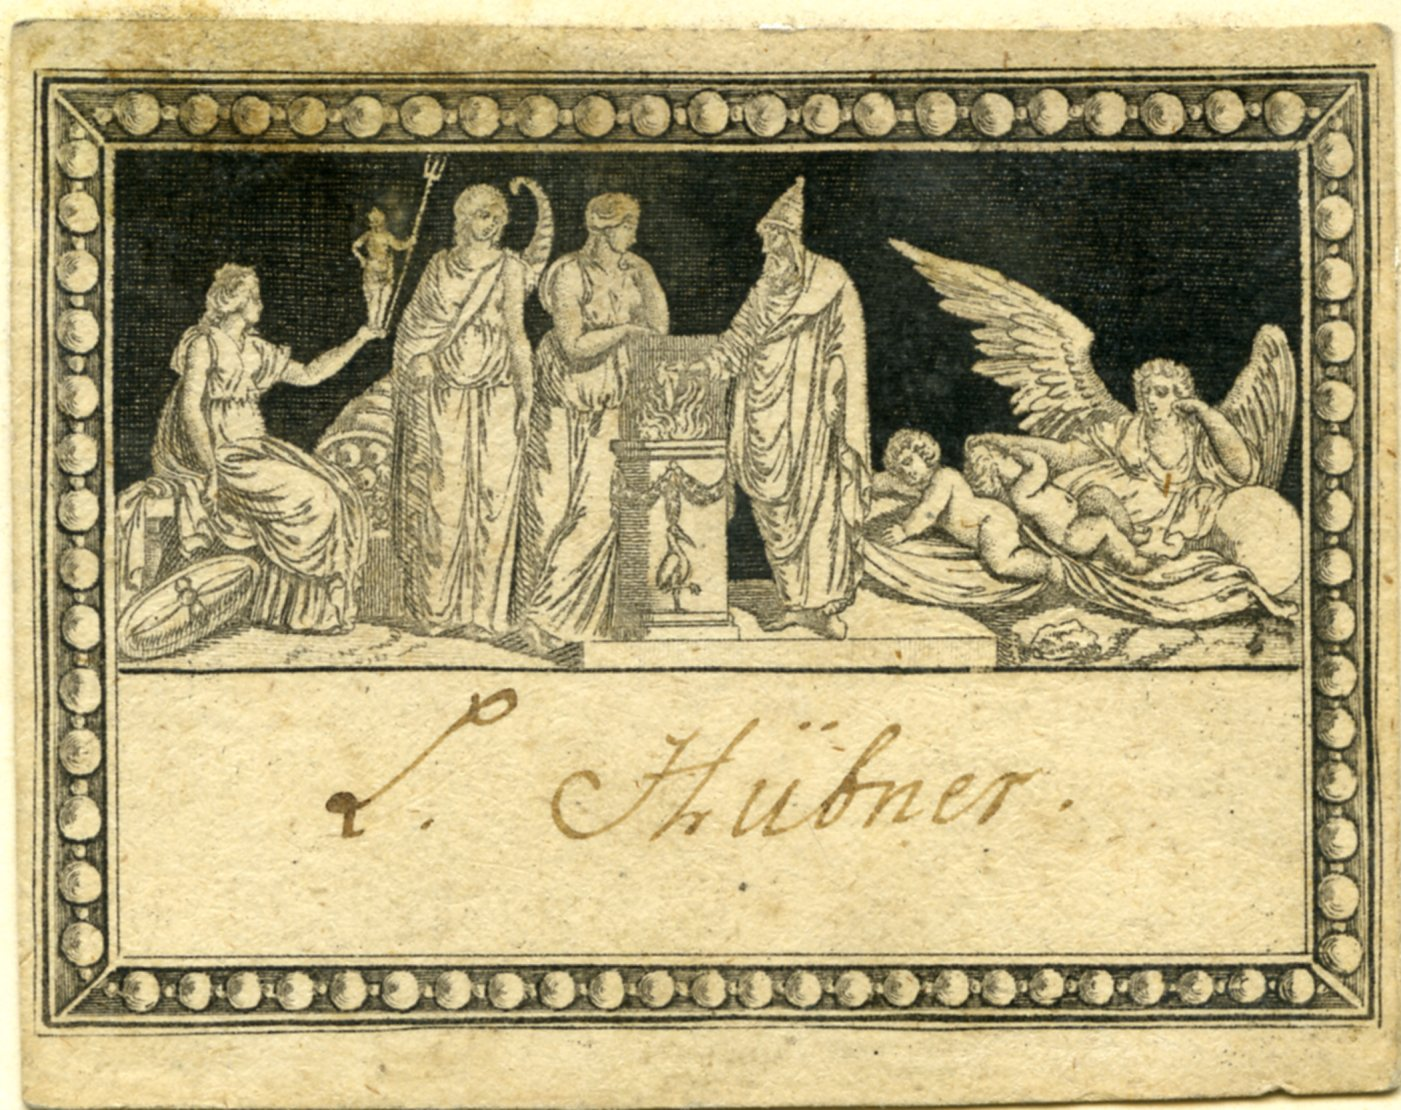 Anonymous, ex libris Lorenz Hübner, Salzburg, last fourth 18th c., paper, inv. no. BIB EXL 0003